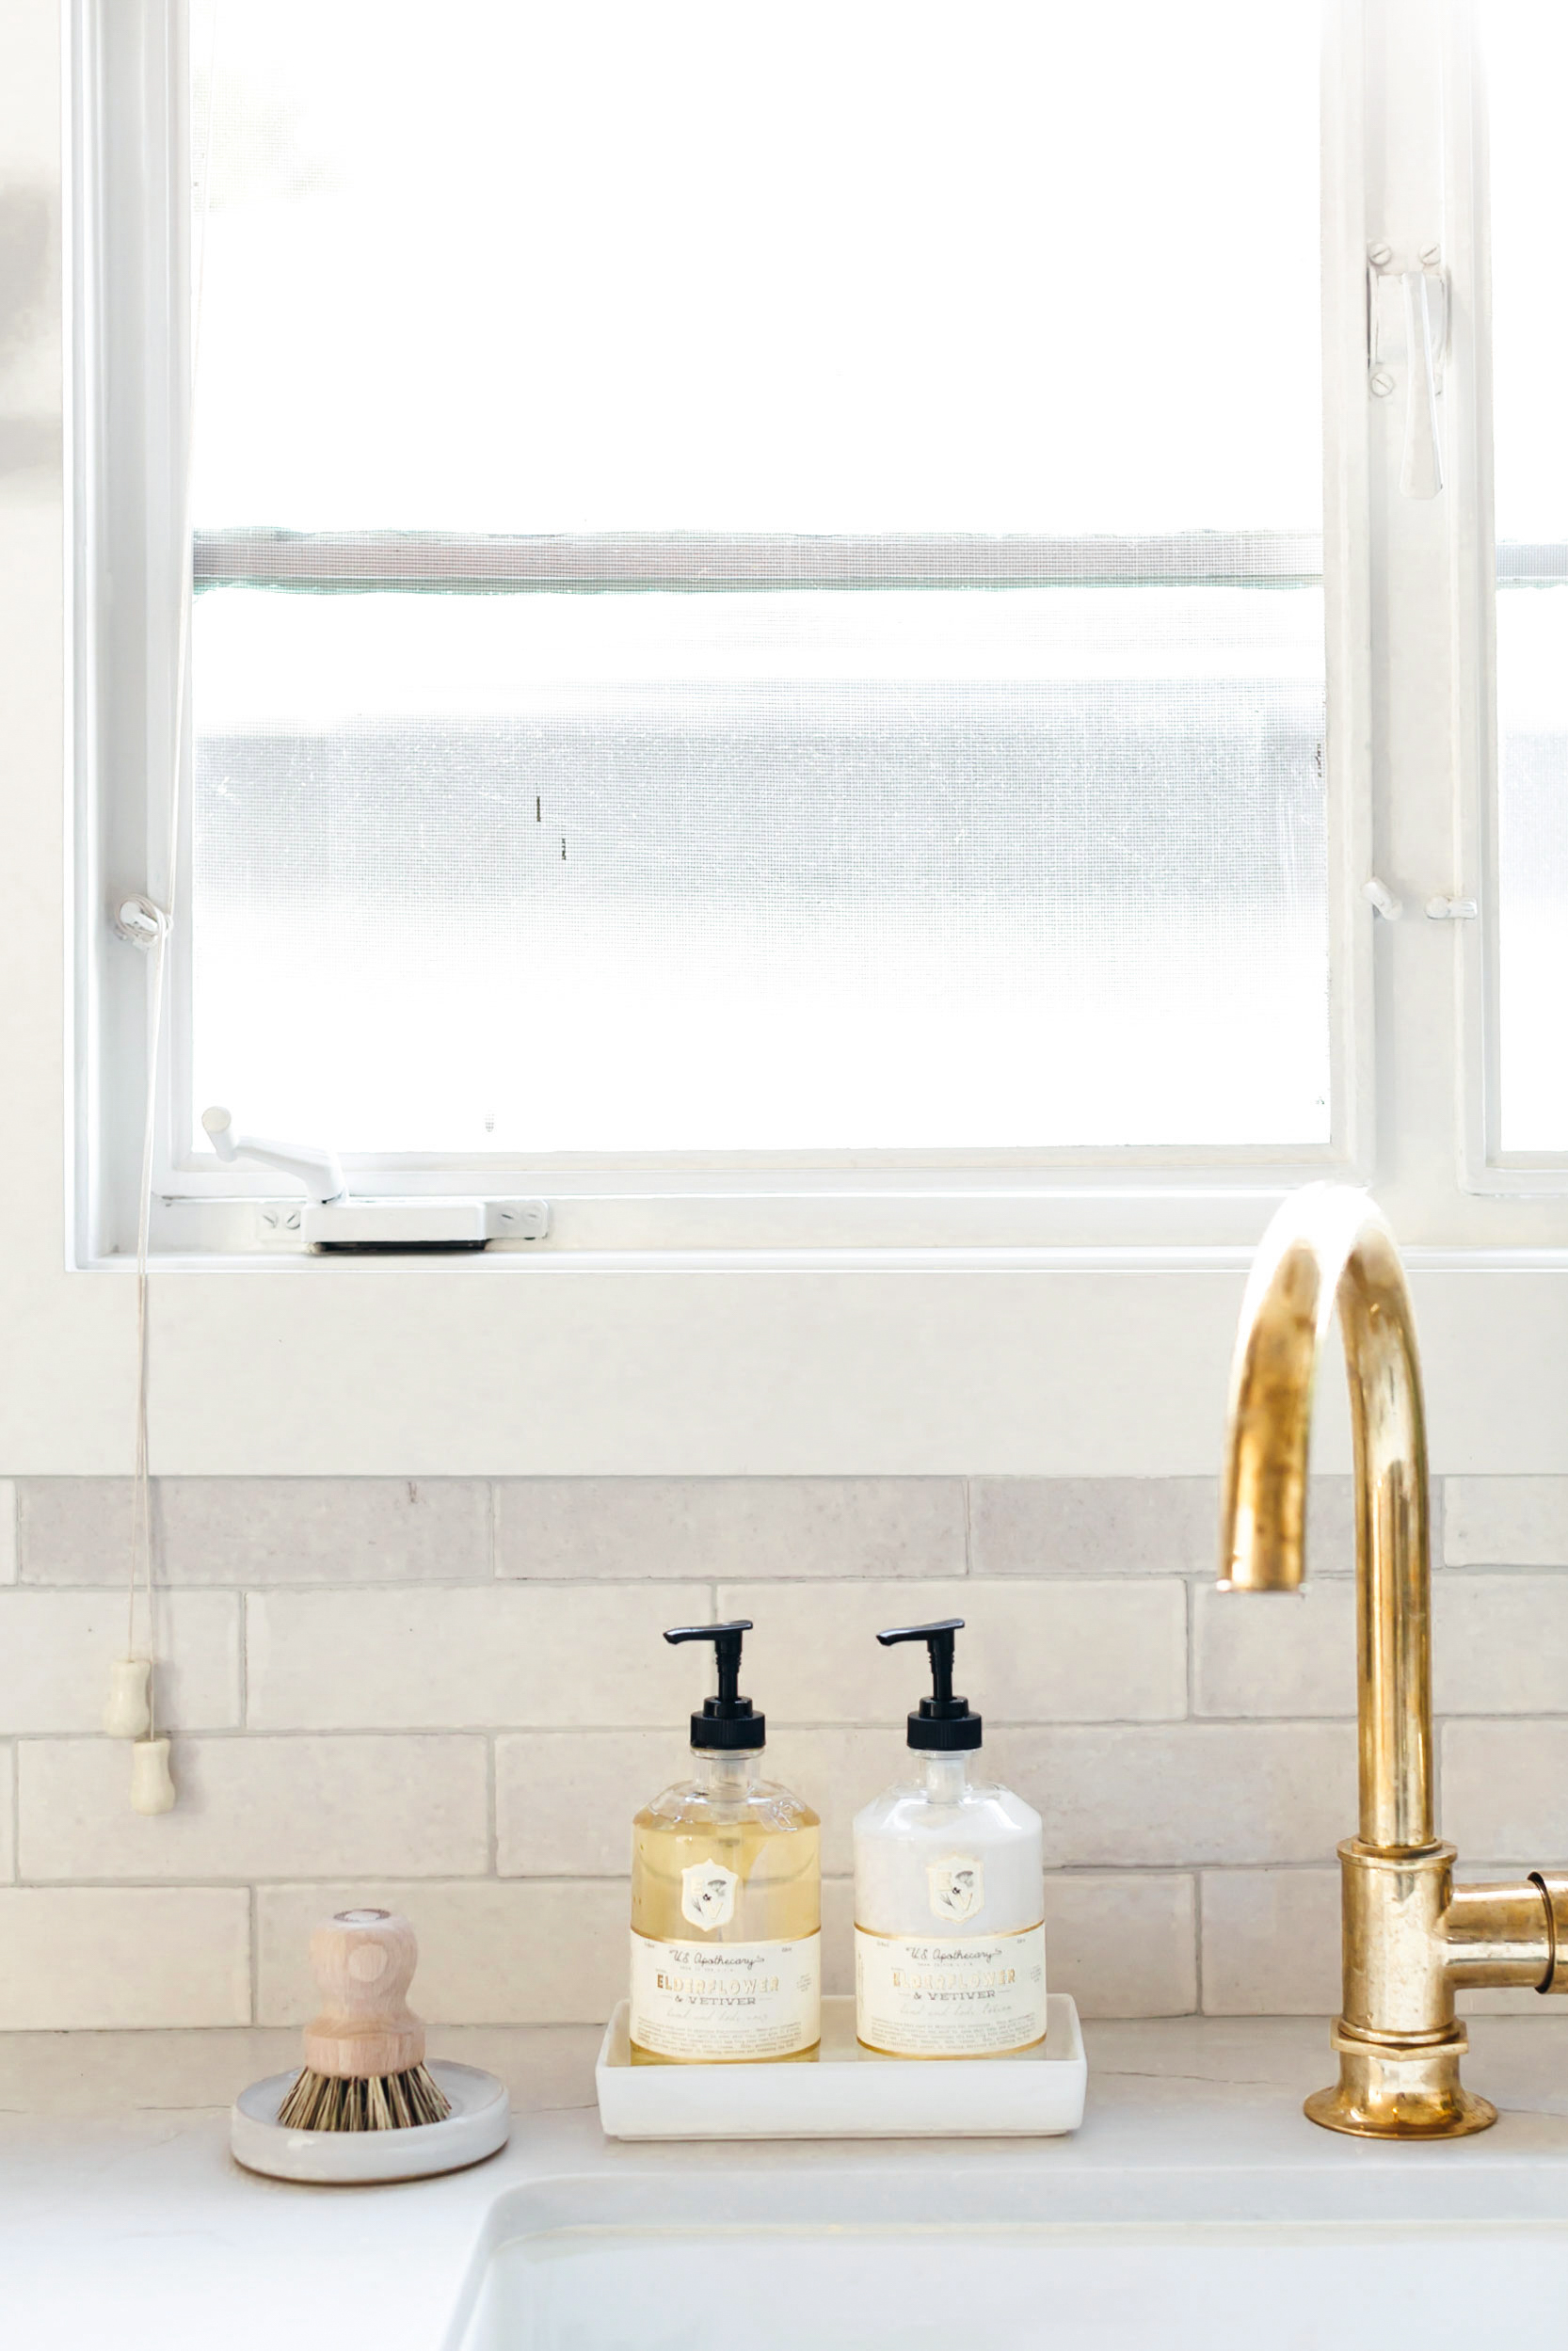 http annesage com 2018 02 07 waterworks brass faucet and farmhouse sink